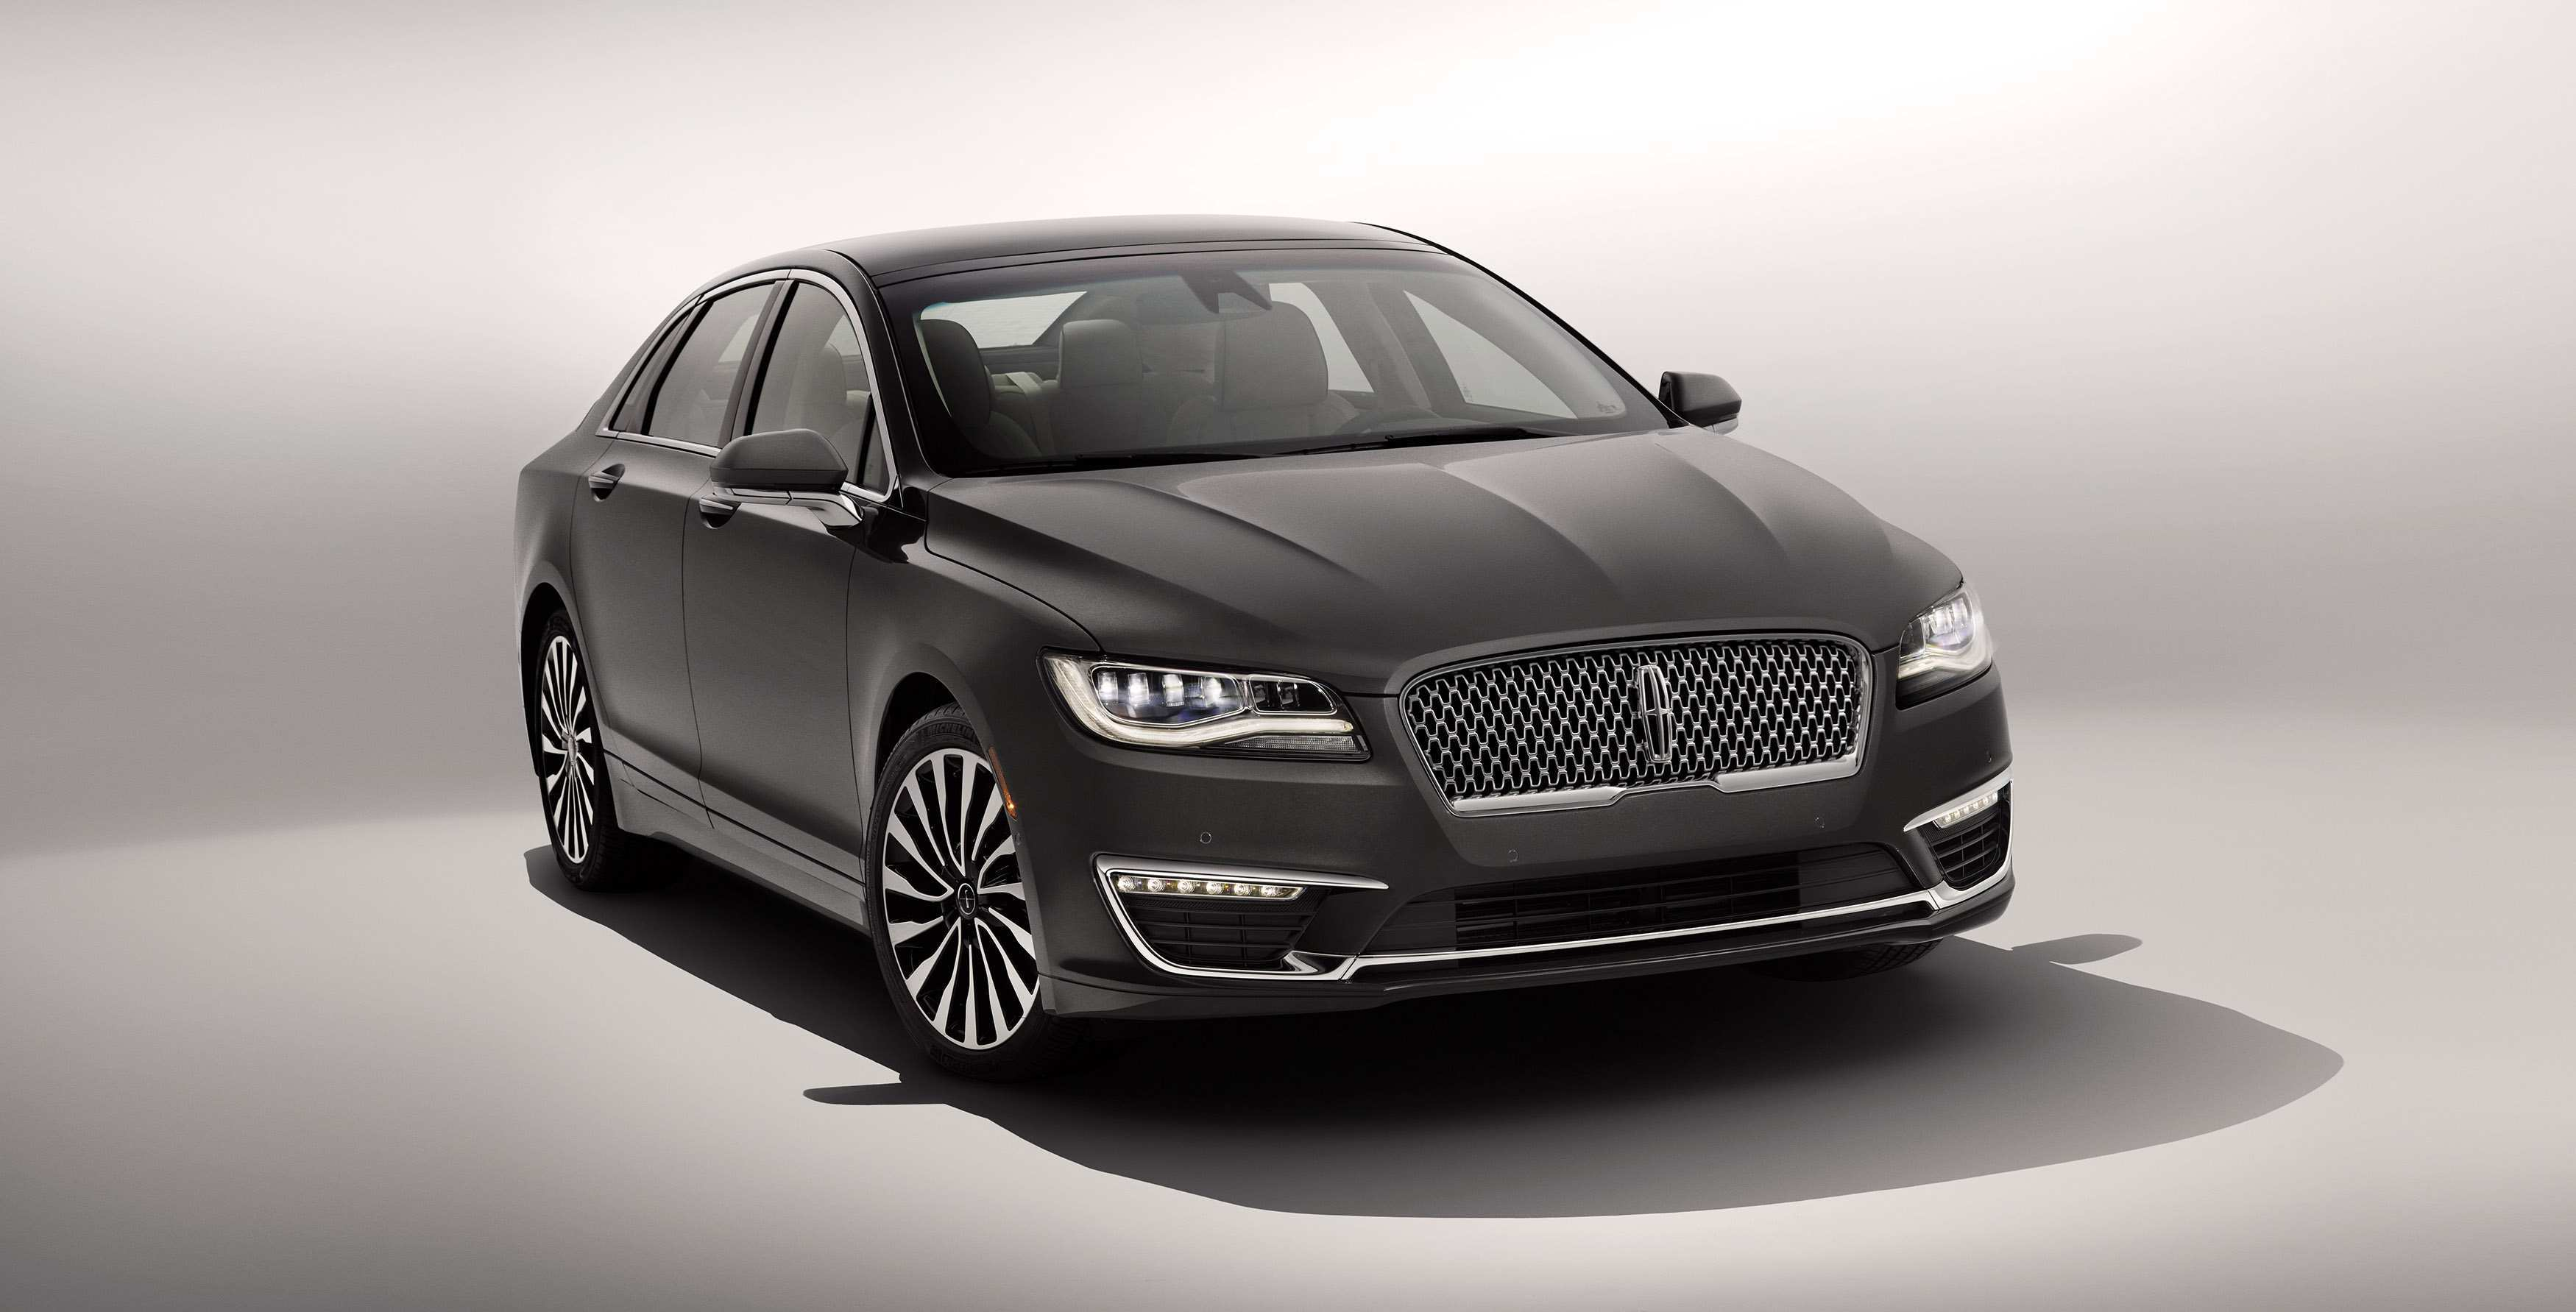 96 A 2020 Lincoln MKS Spy Photos Spy Shoot